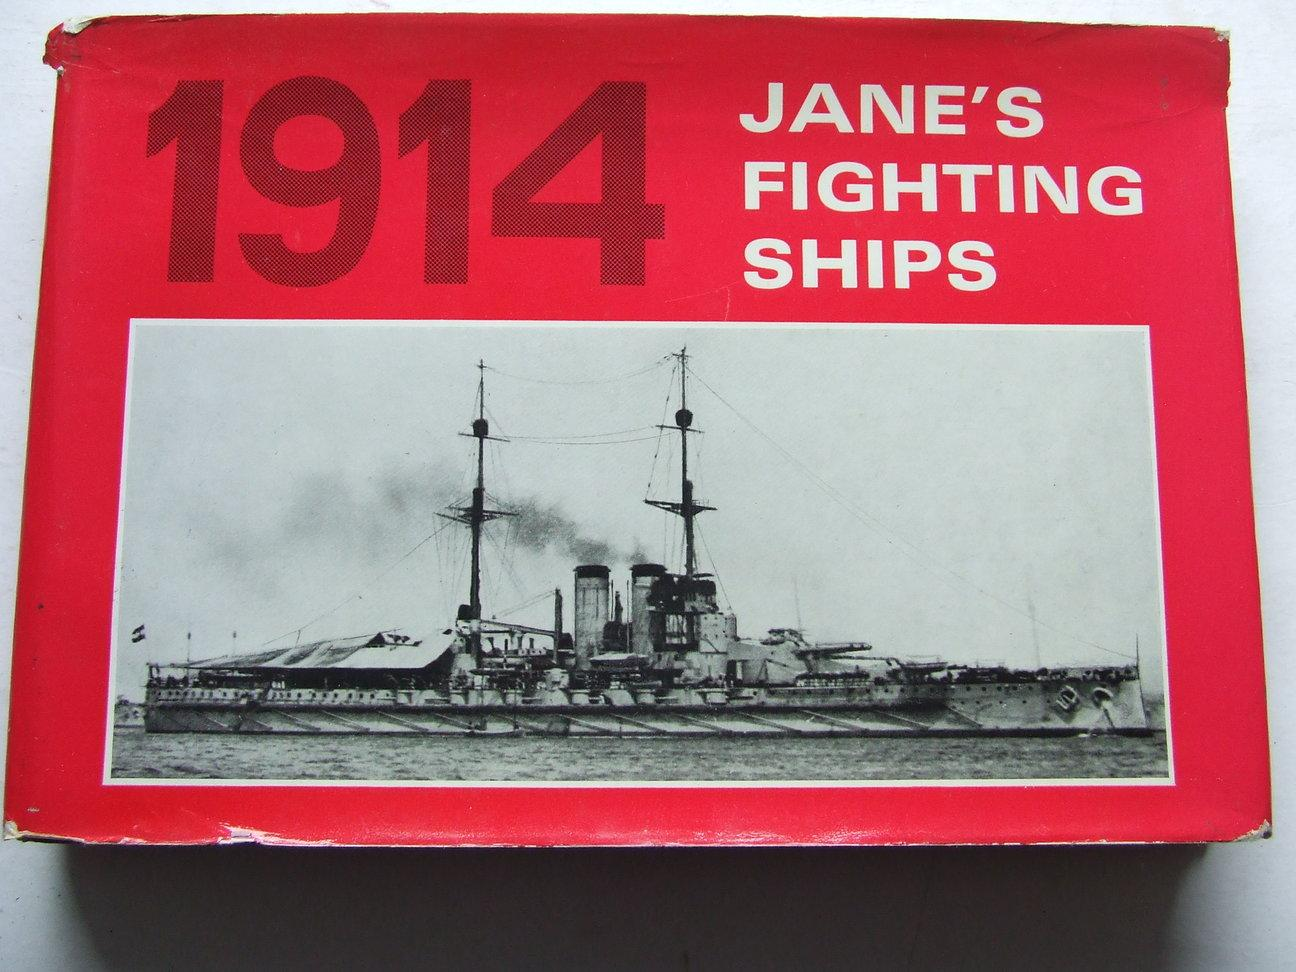 Jane's Fighting Ships 1914. including a chapter on the progress of marine engineering by Charles De Grave Sells